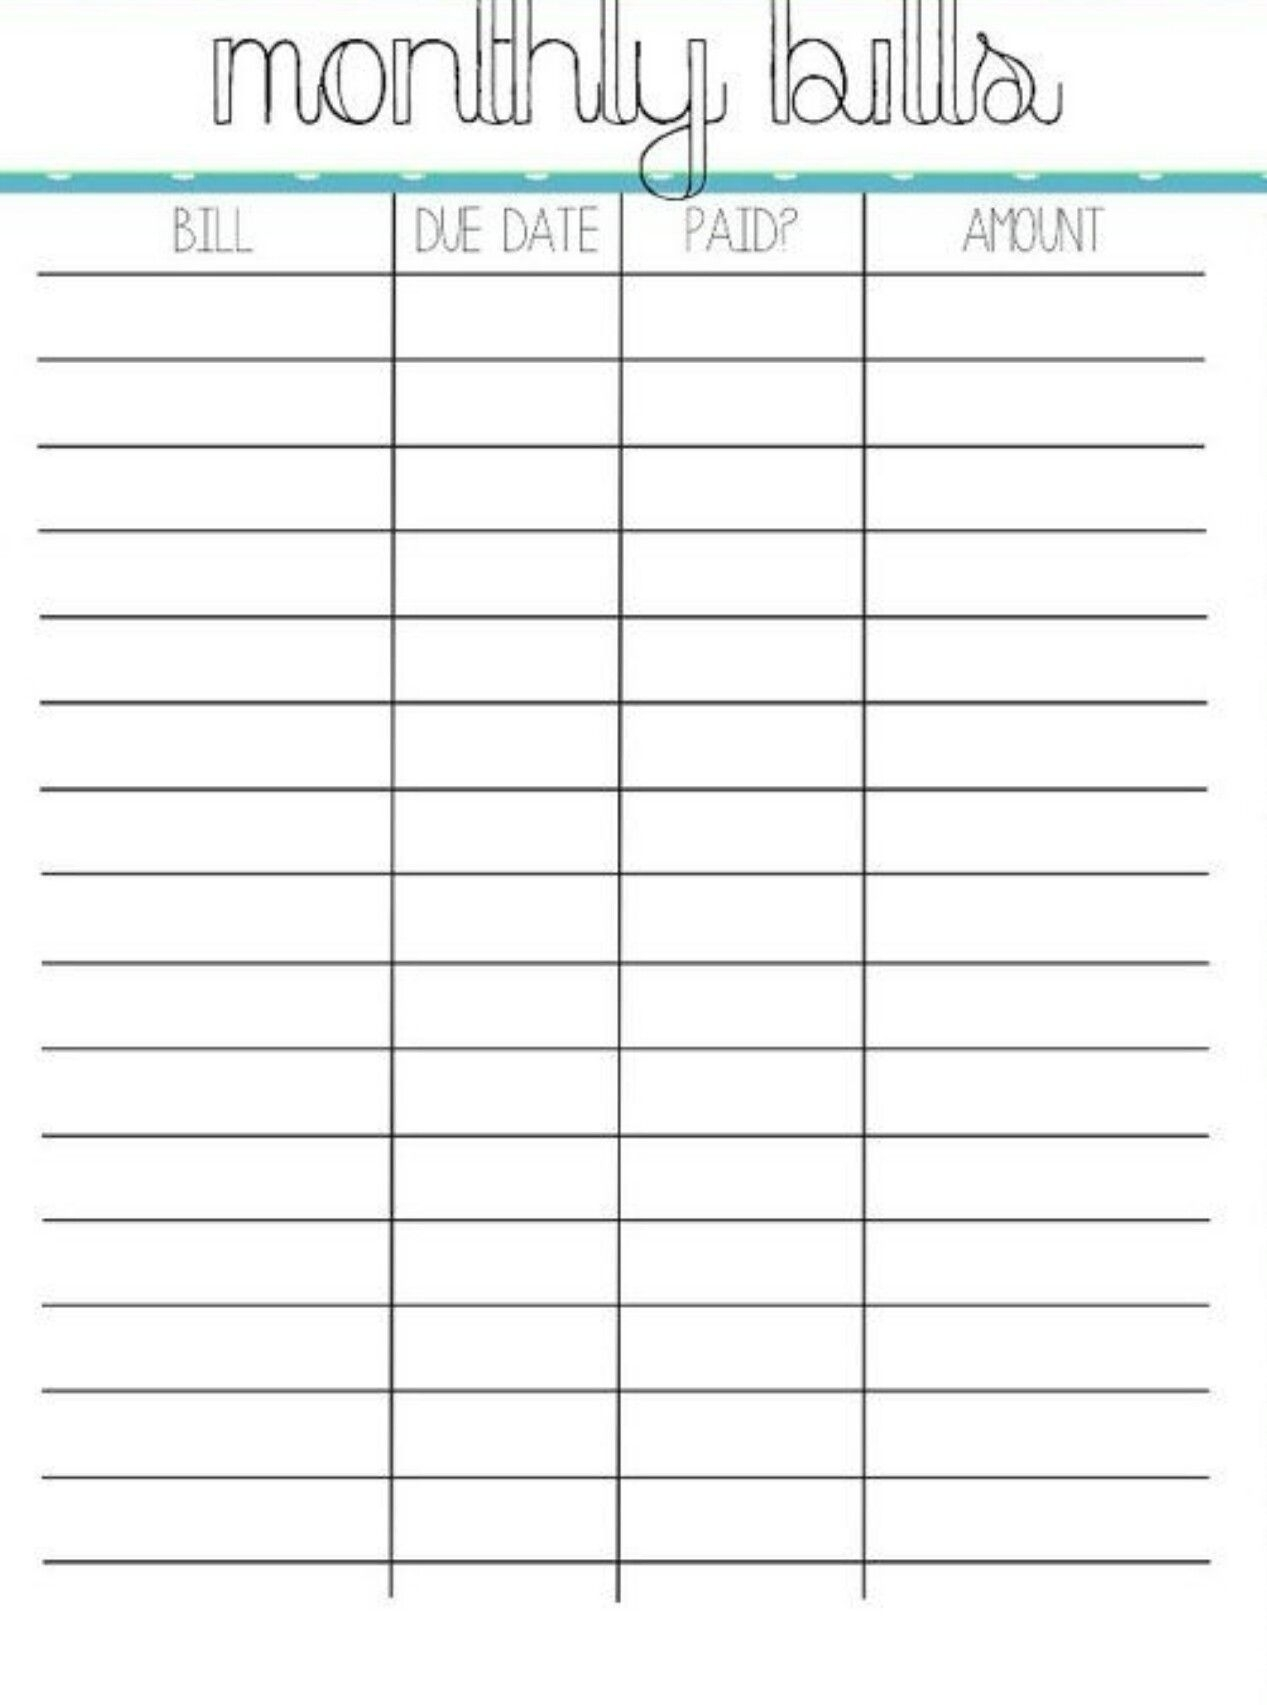 Pincrystal On Bills | Organizing Monthly Bills, Bill for Pay My Bill Organizer Sheet